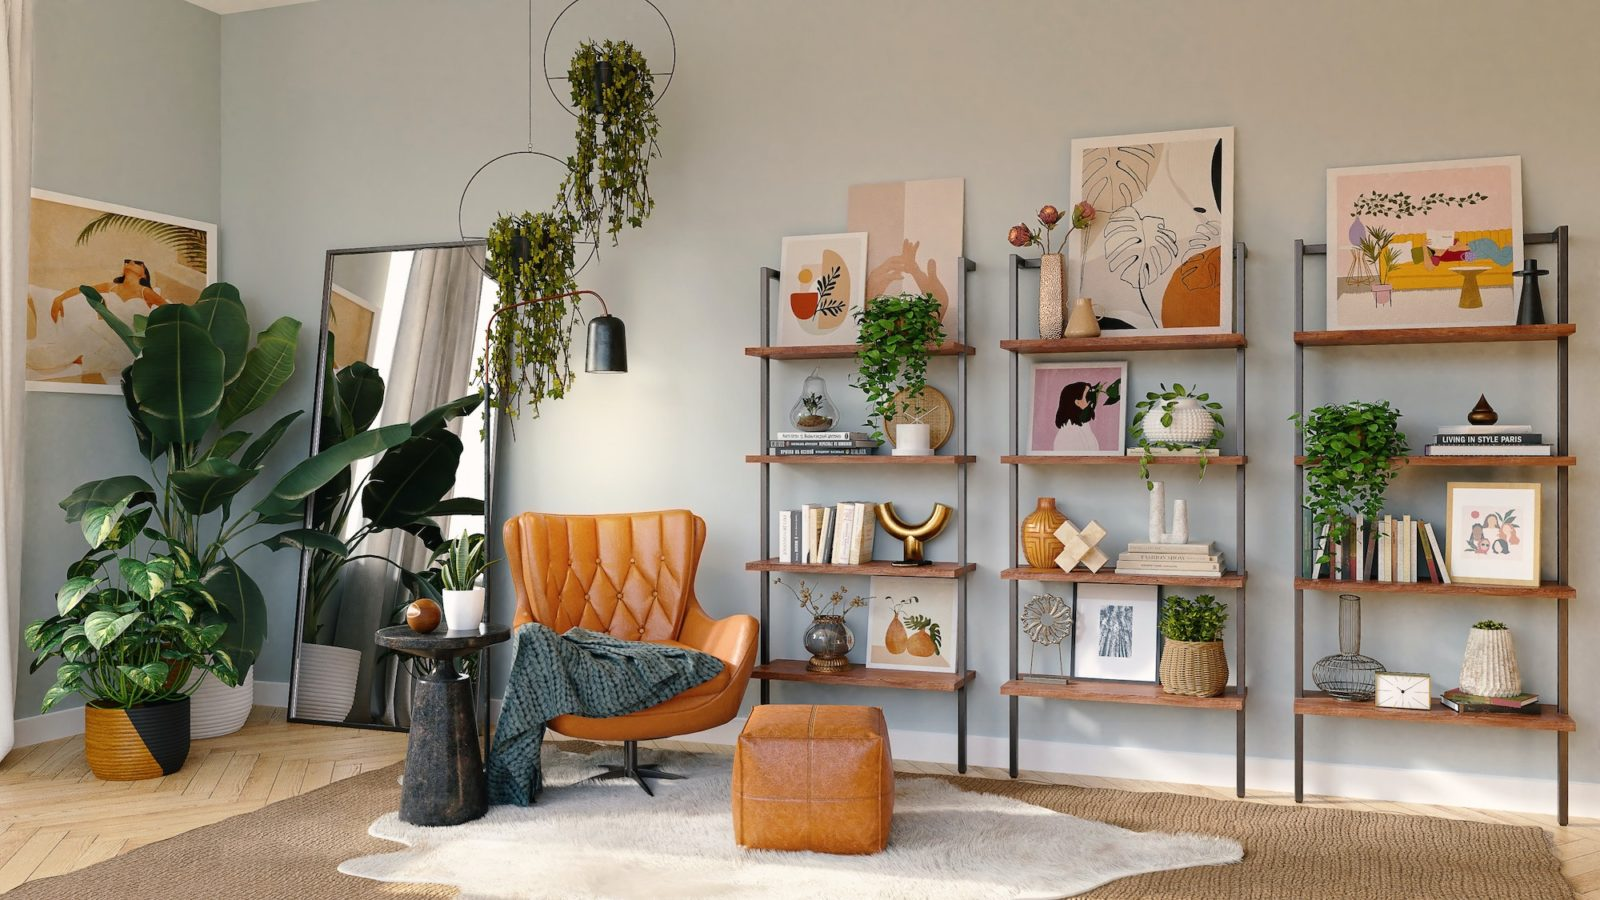 Use these shelf styling tips to transform your home and work space